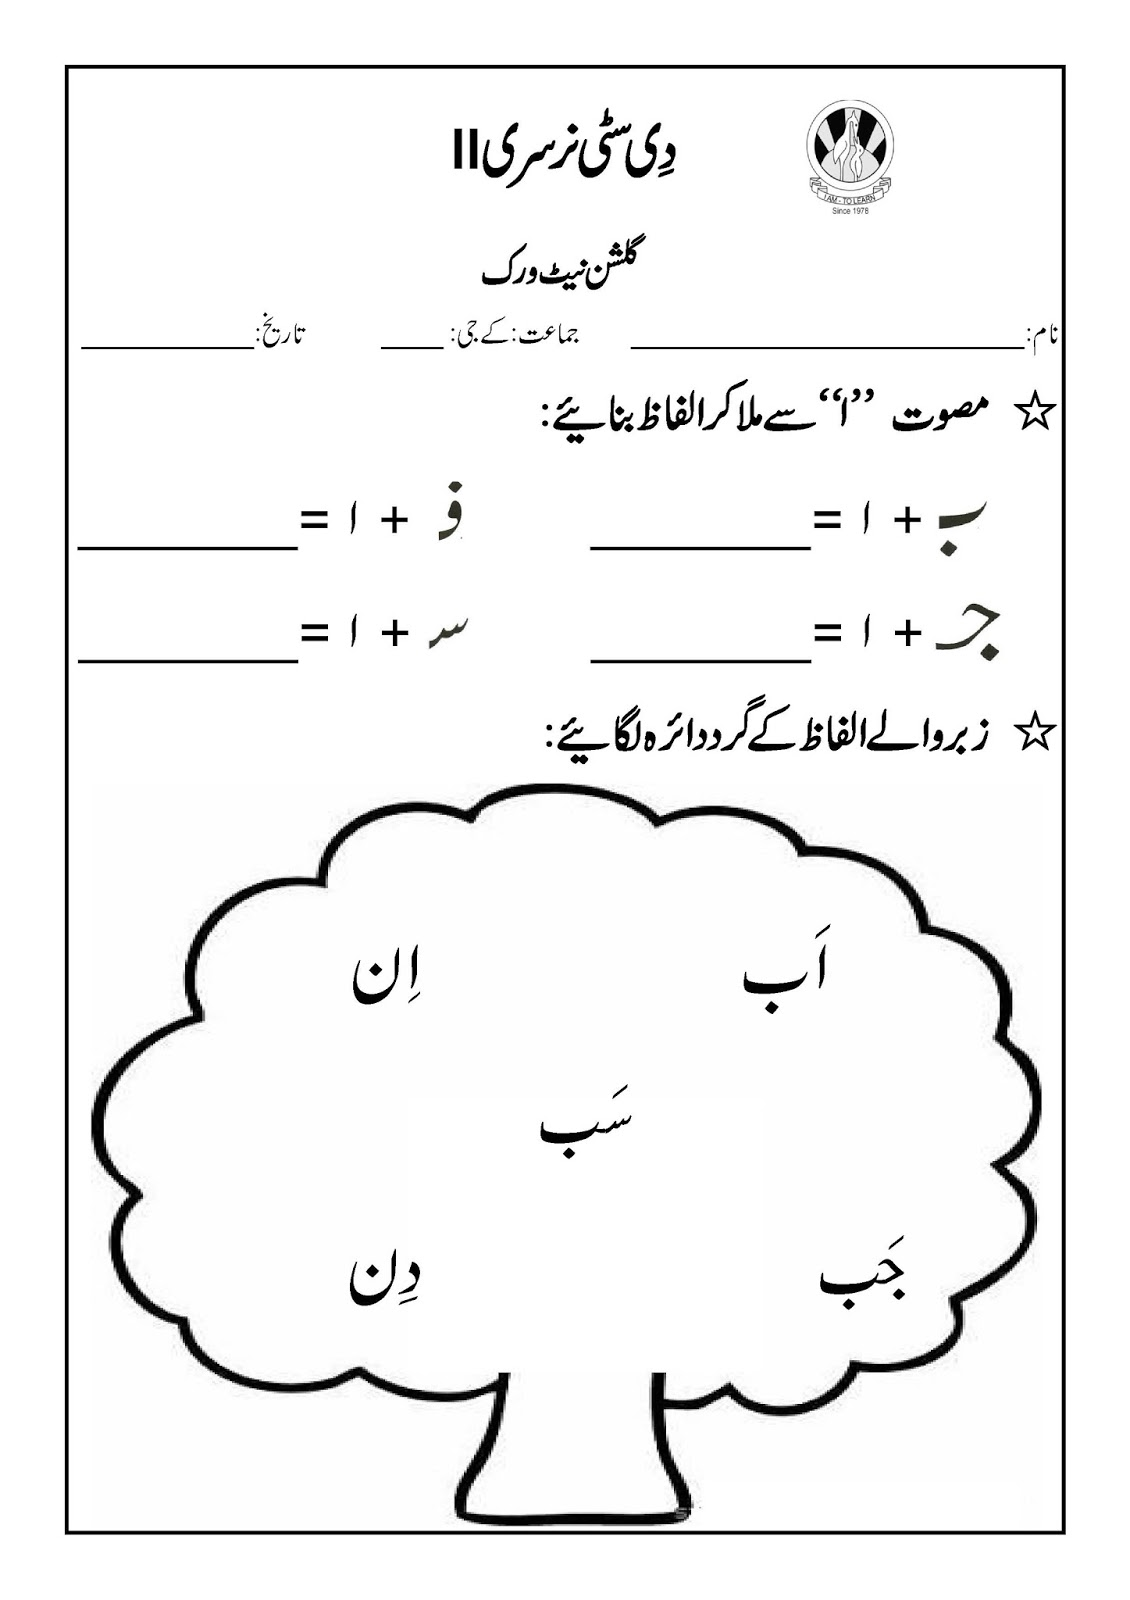 77 Nursery Class Syllabus Urdu Worksheets Activities